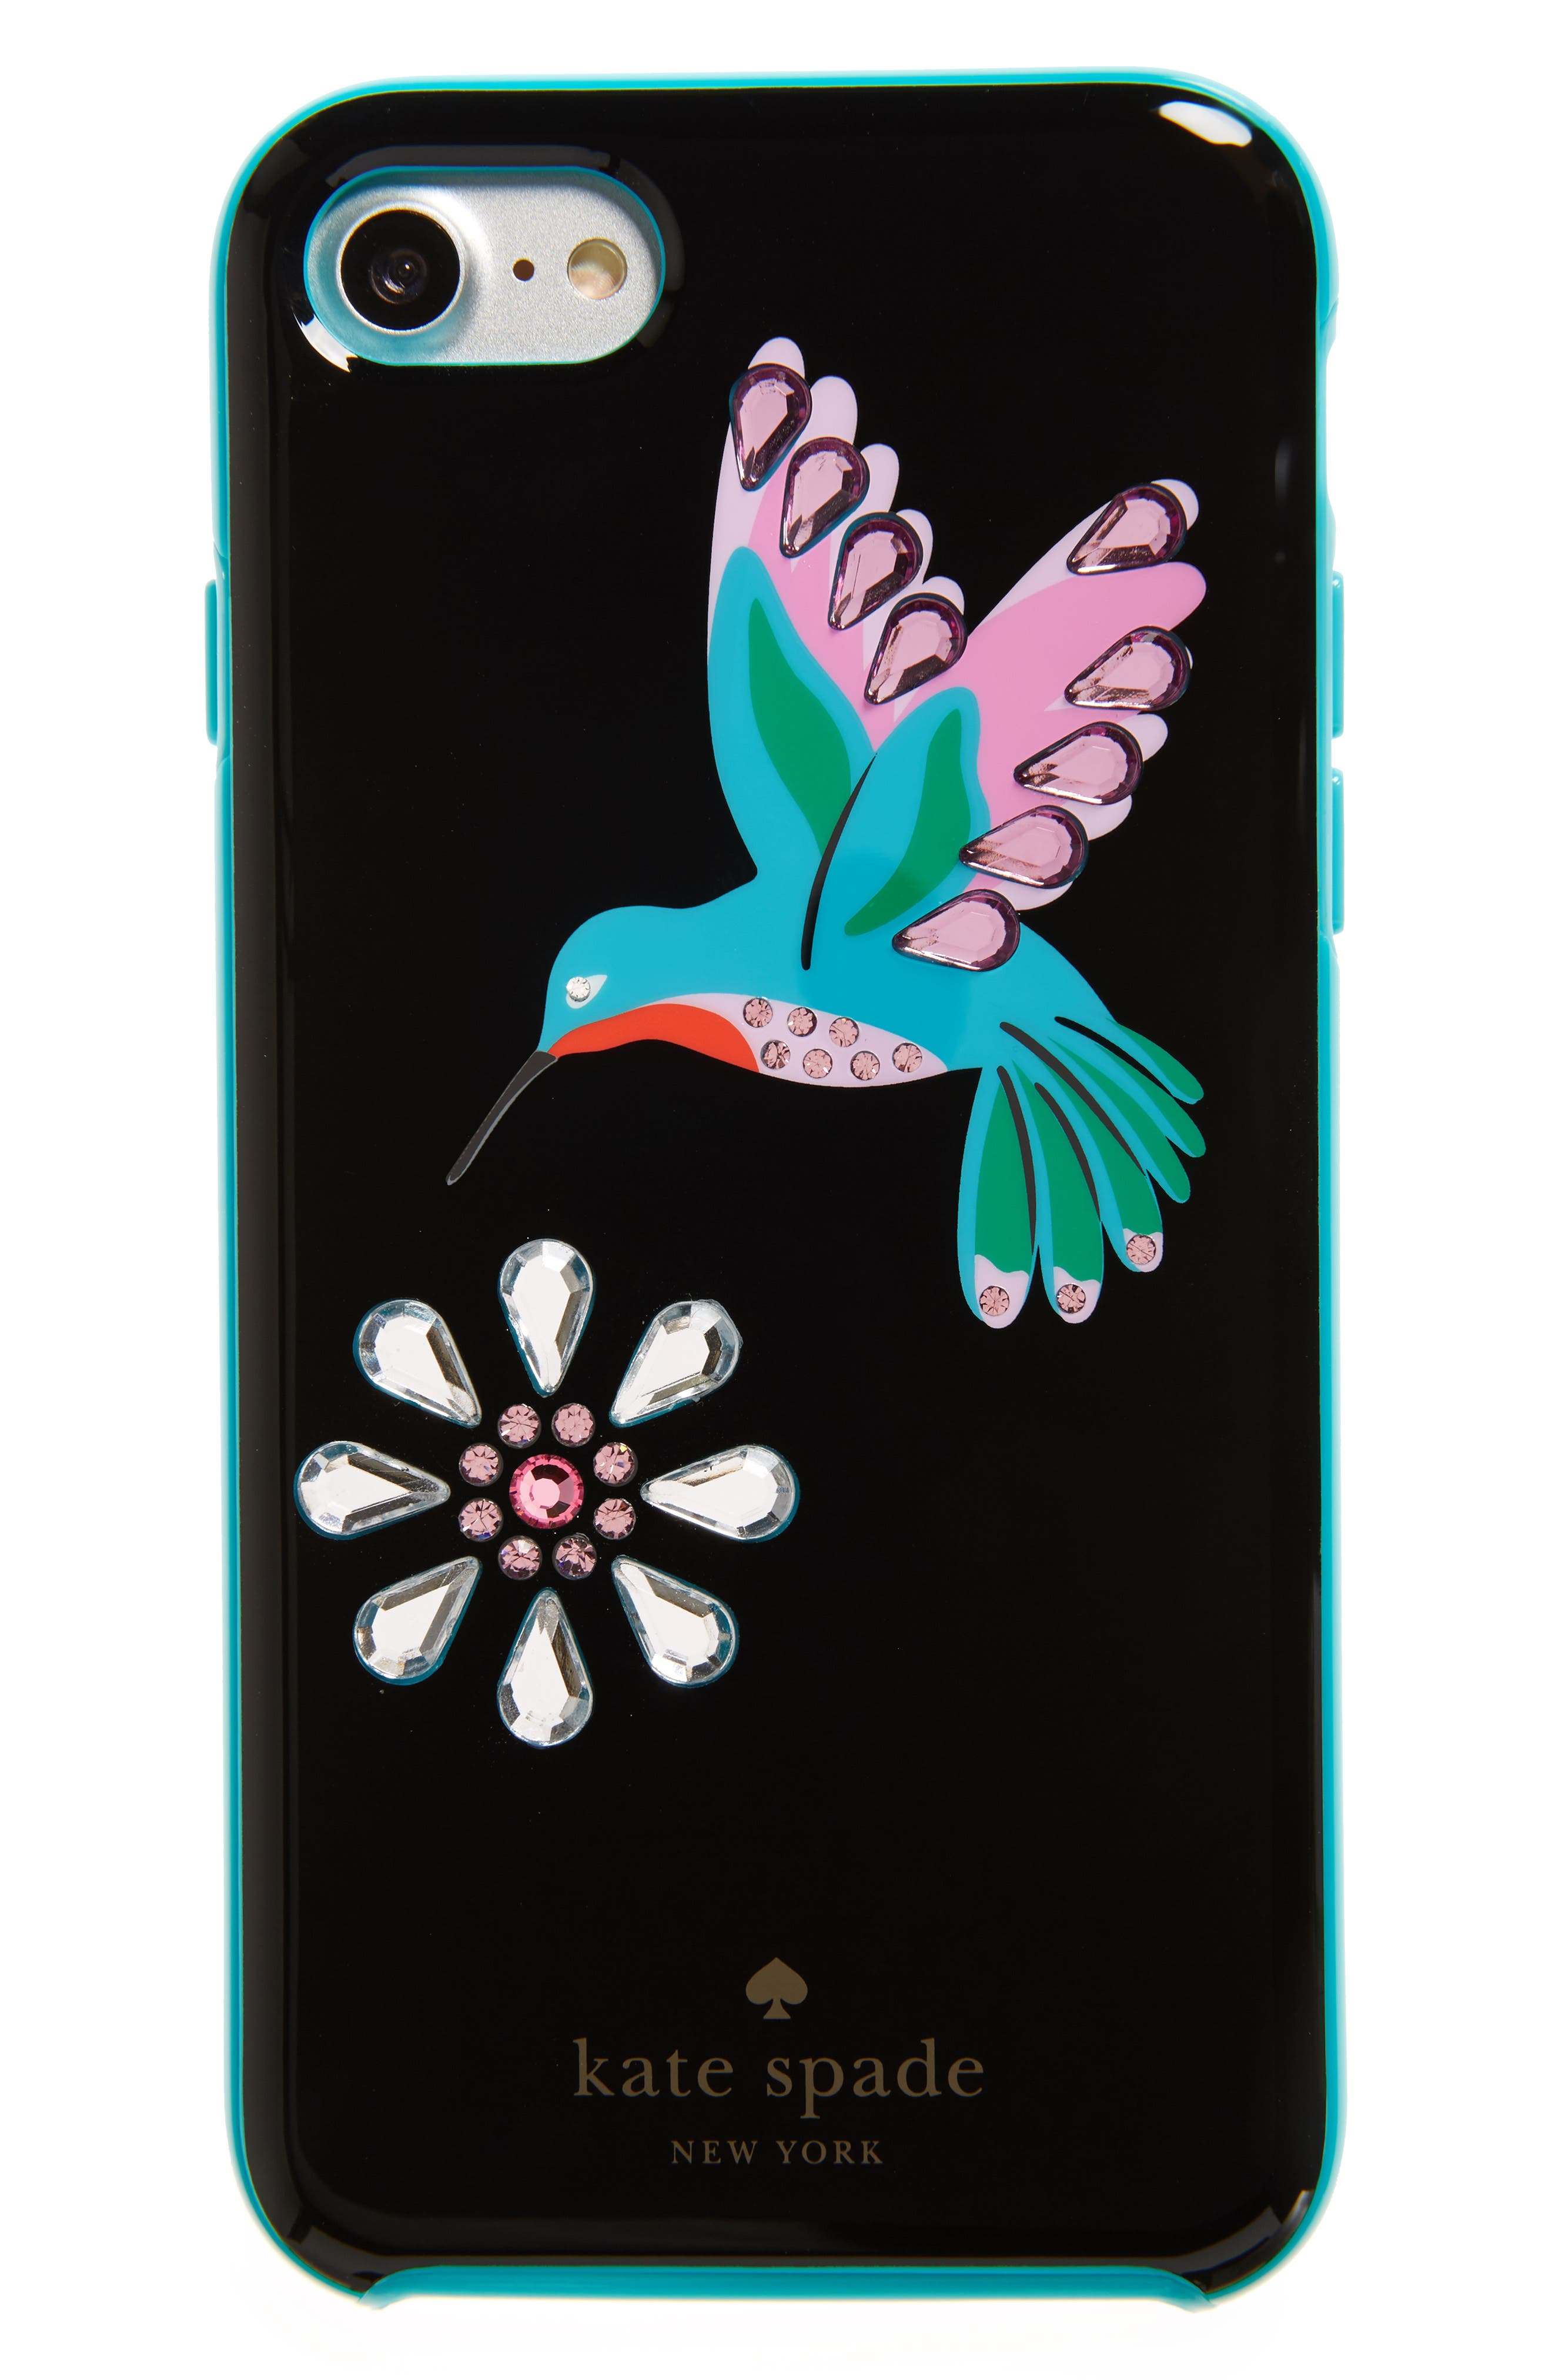 kate spade new york jeweled hummingbird iPhone 7 & 7 Plus case